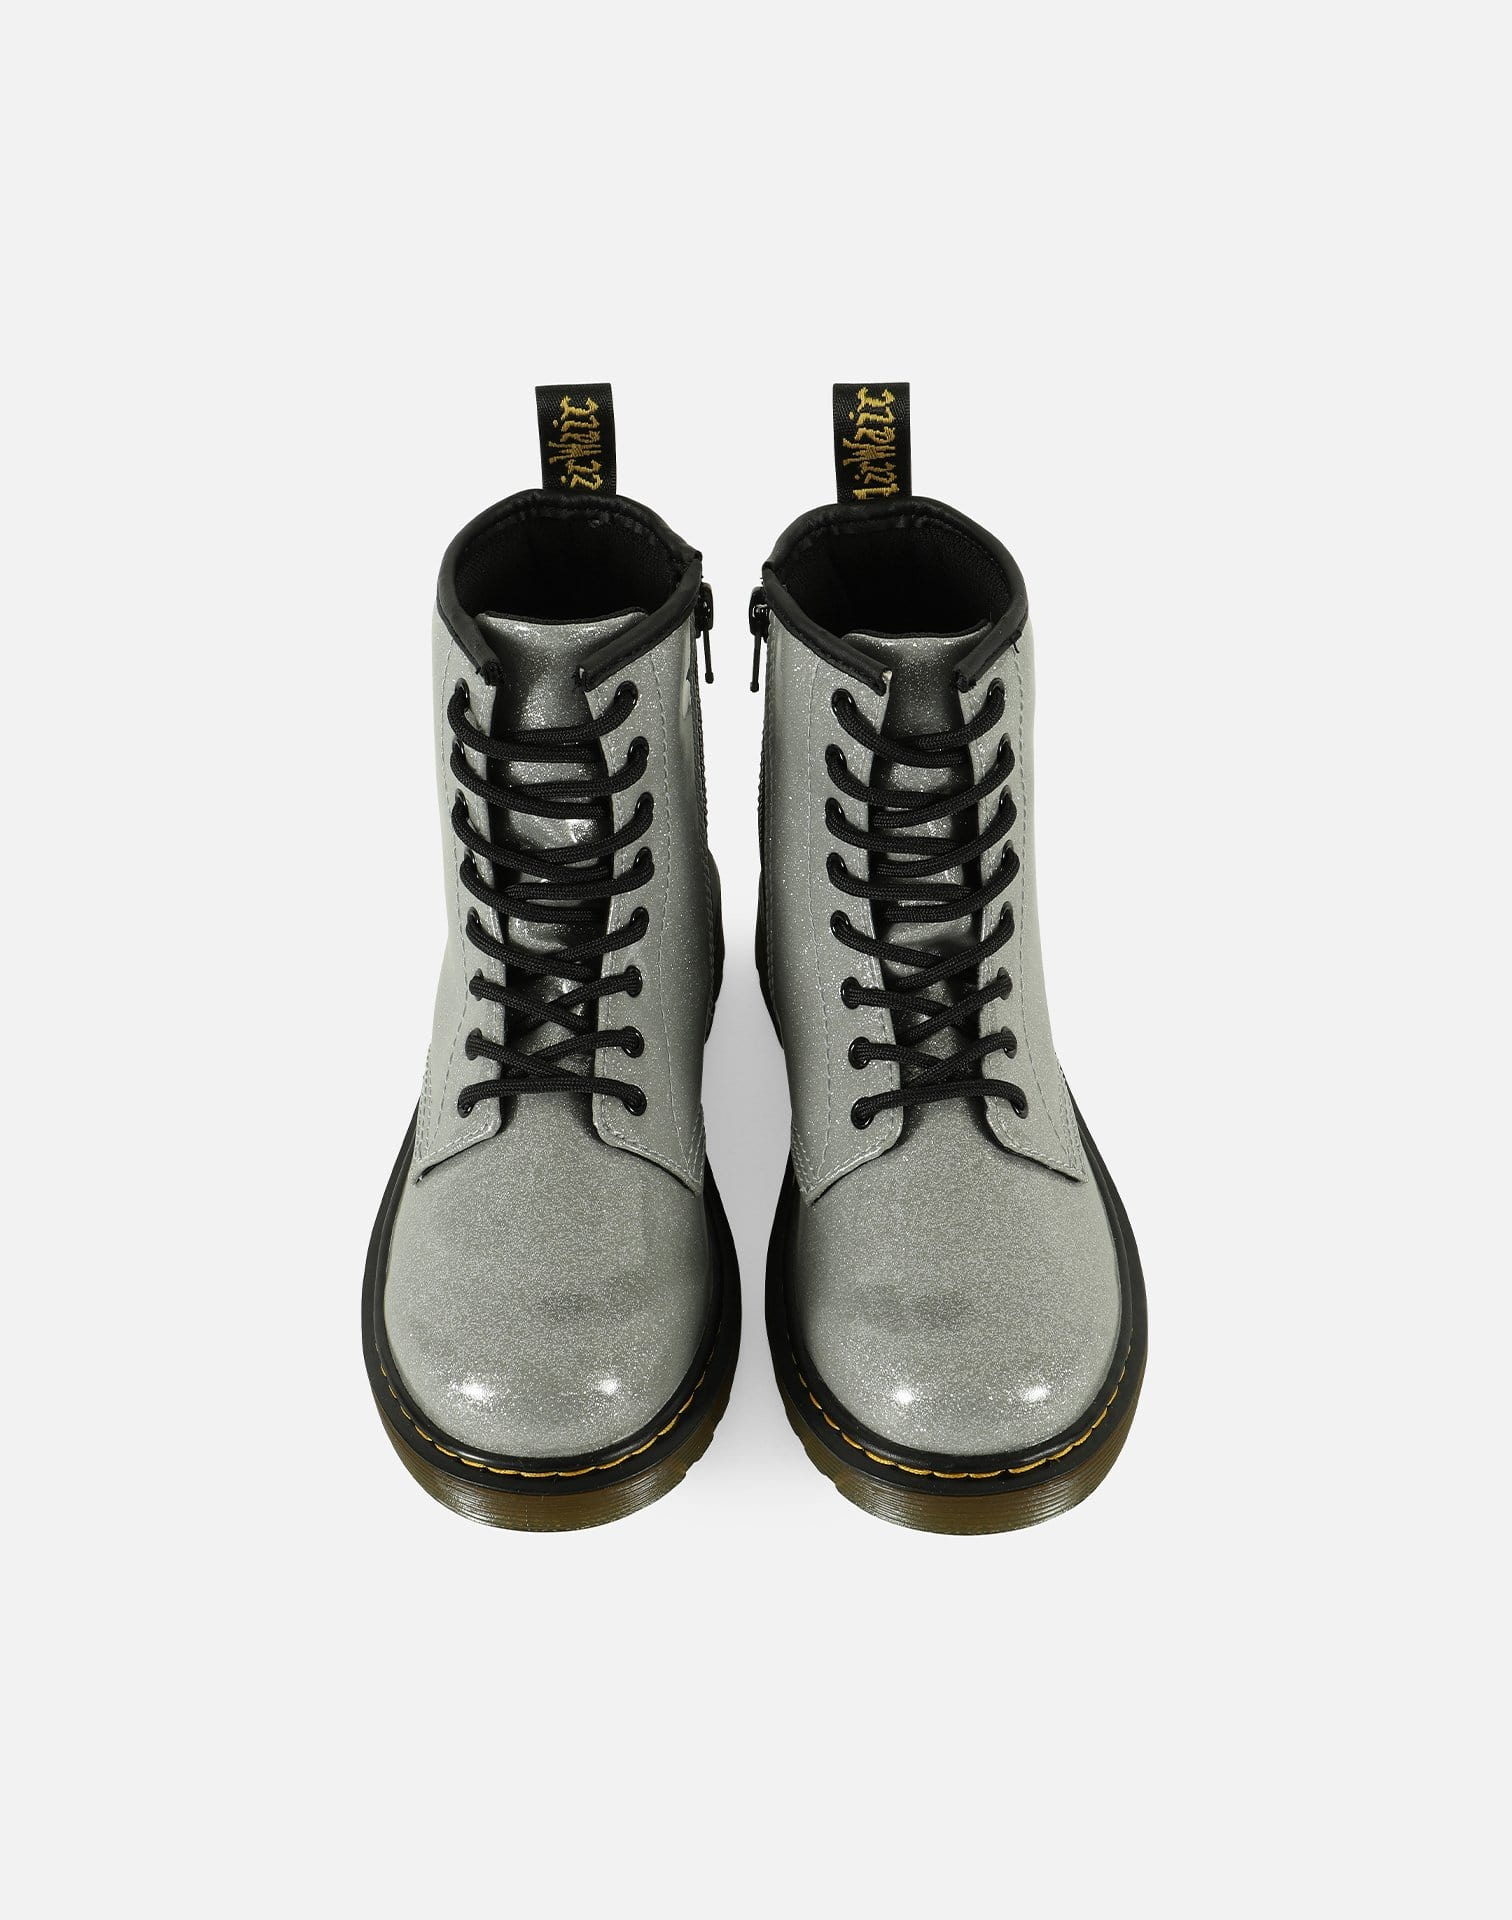 Dr. Martens 1460 Glitter Patent Leather Boots Pre-School